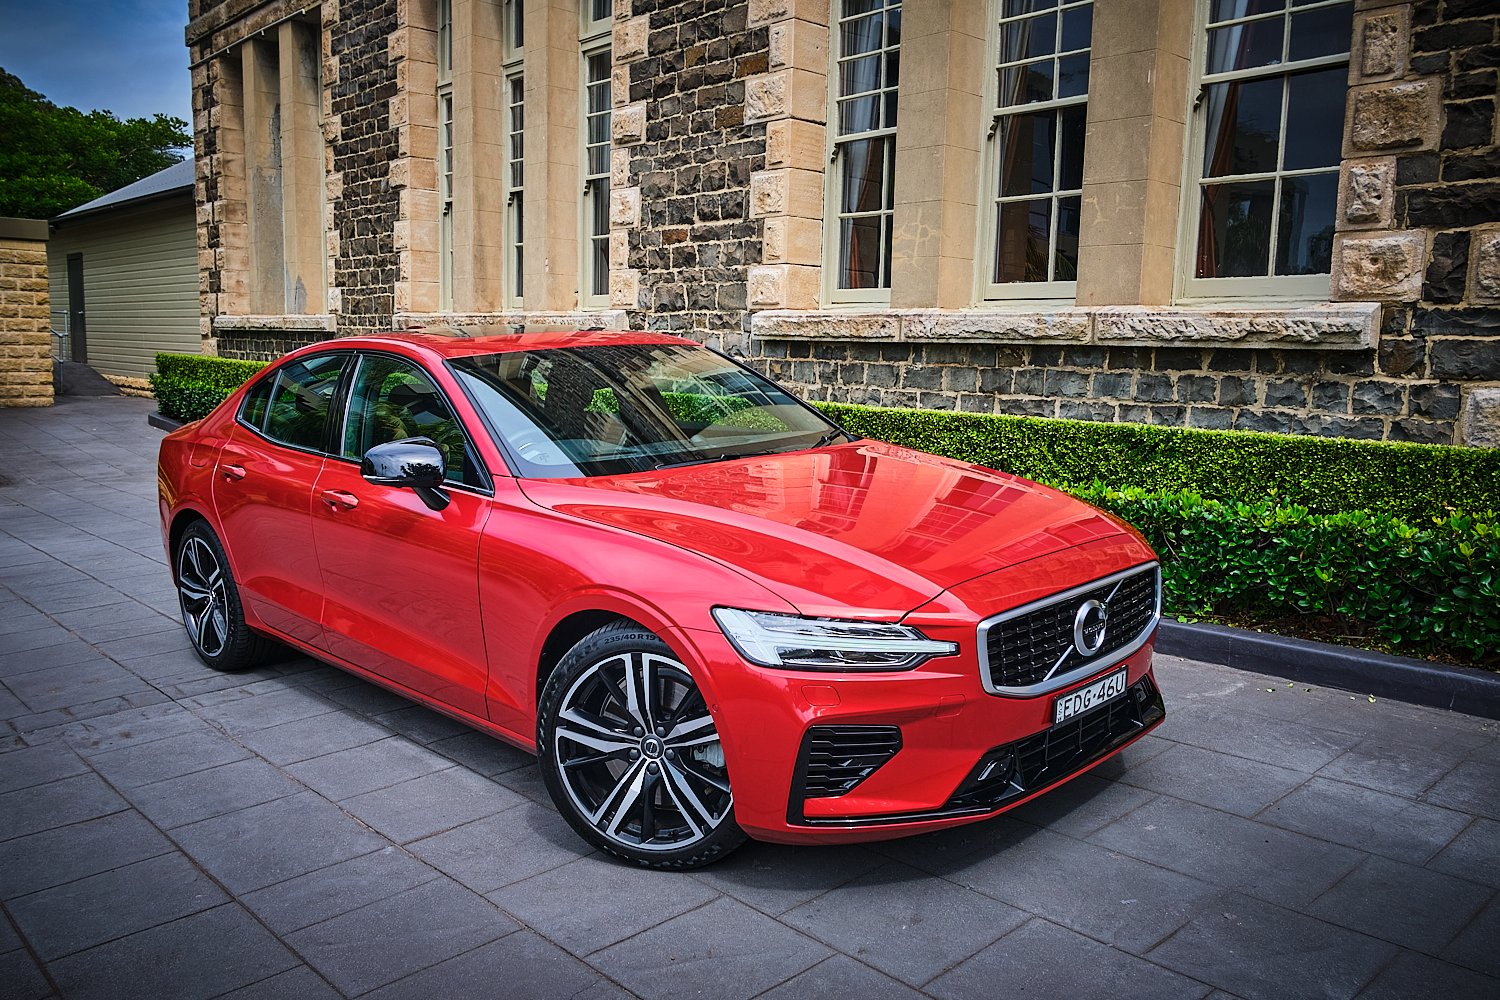 Auto Review: 2020 Volvo S60 T8 R-Design • Exhaust Notes ...